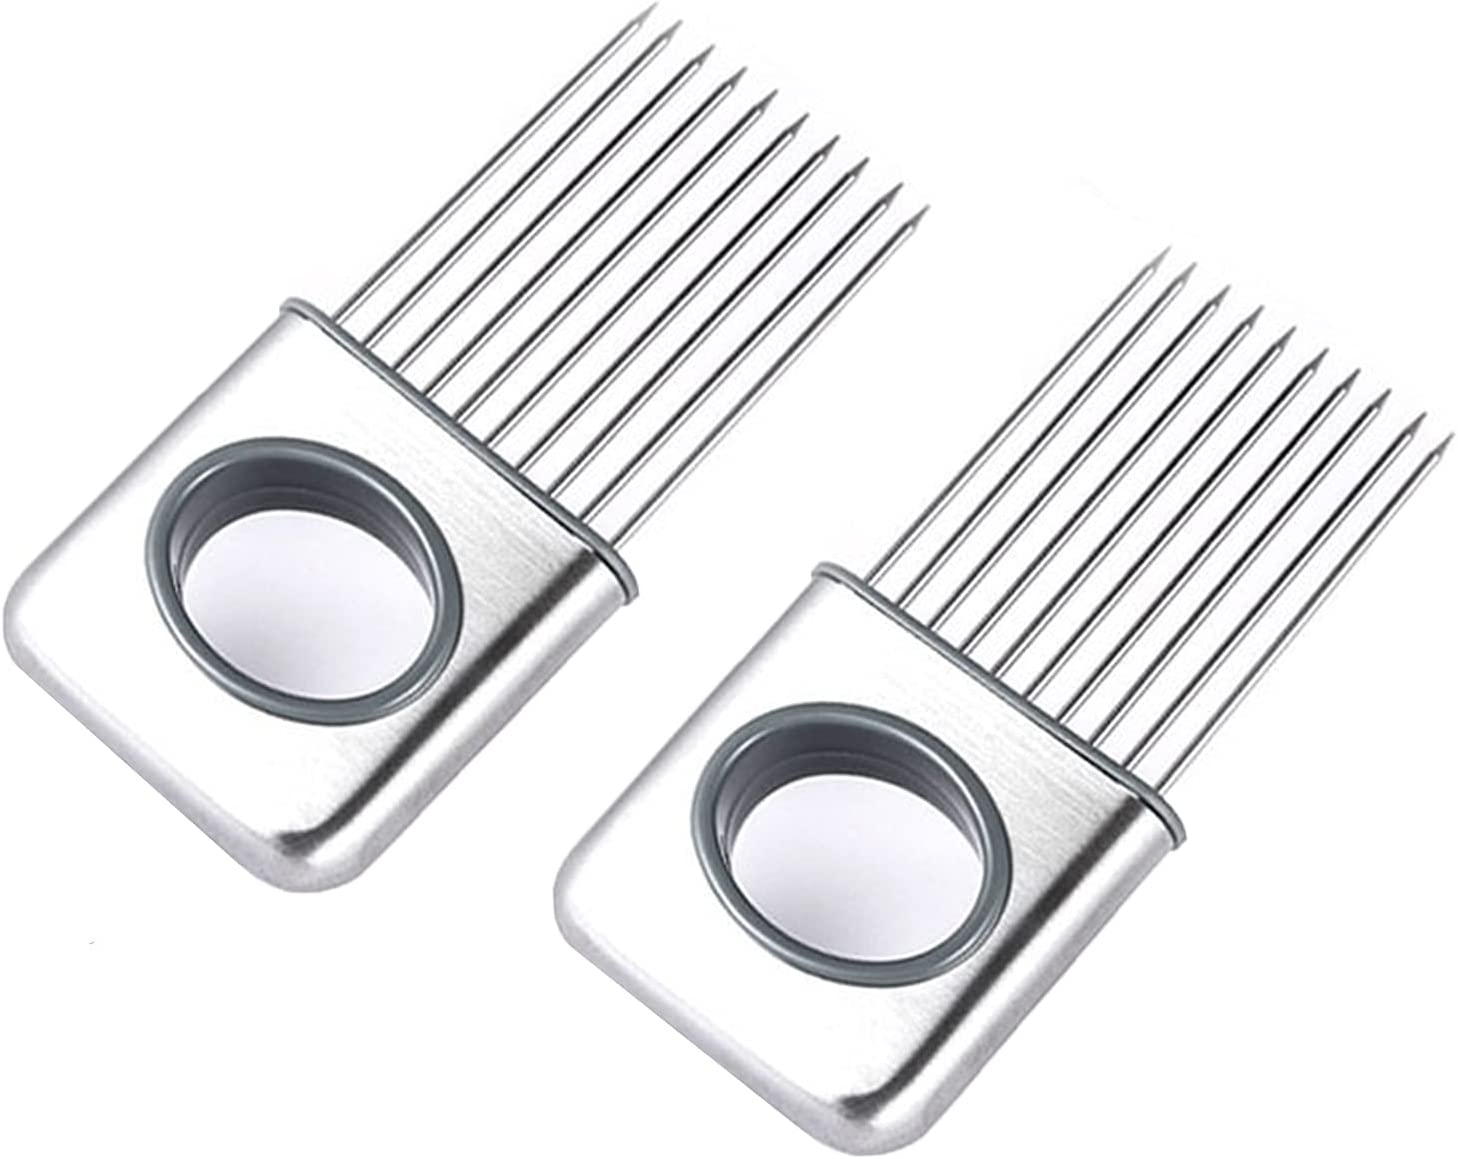 2PCS Assistant Food Slicers Animer and price revision Stainless Steel Chopper Vegetable shop G